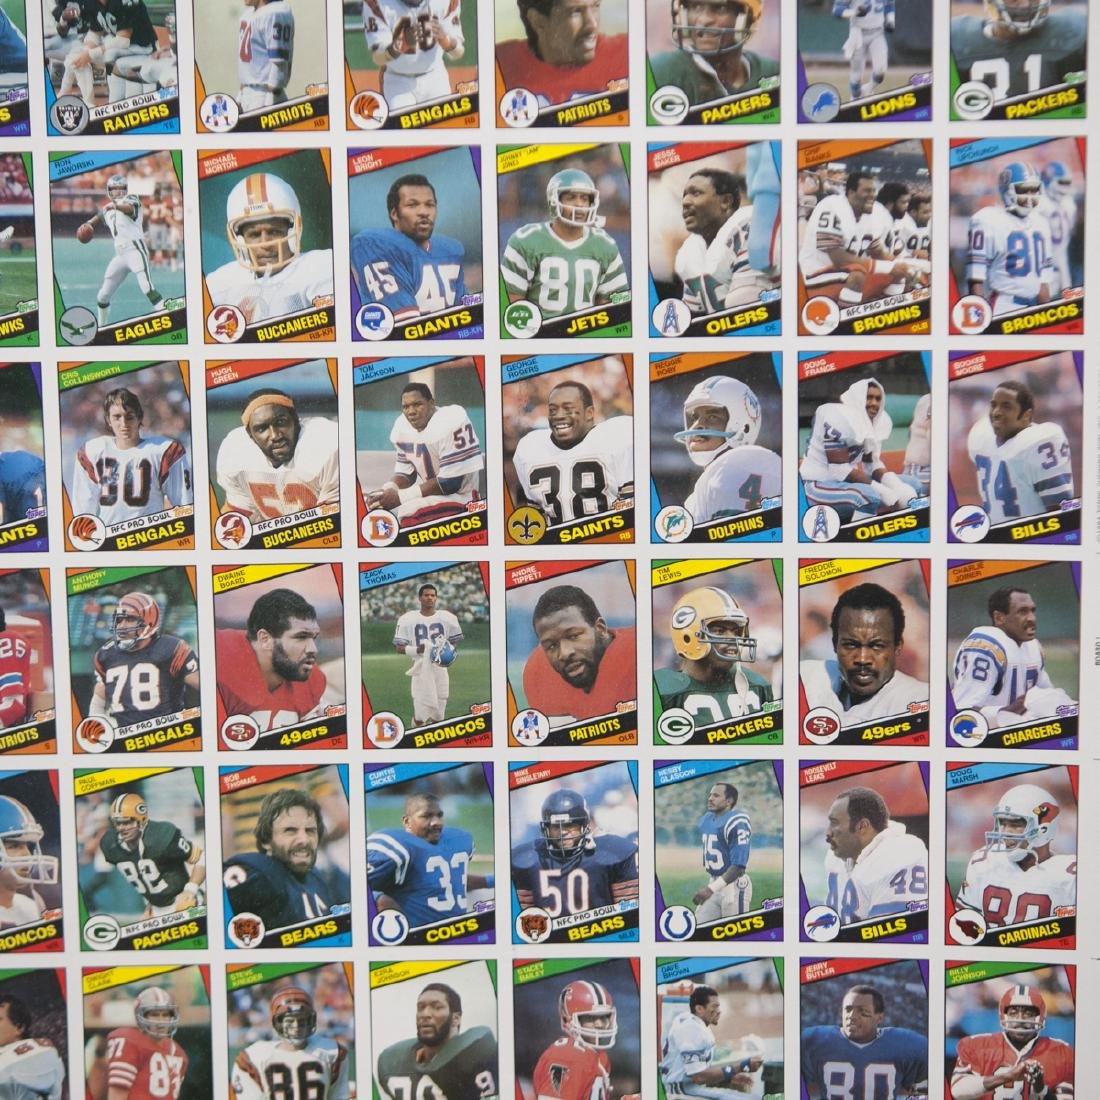 1984 Topps Chewing Gum NFL Card Sheets - 5